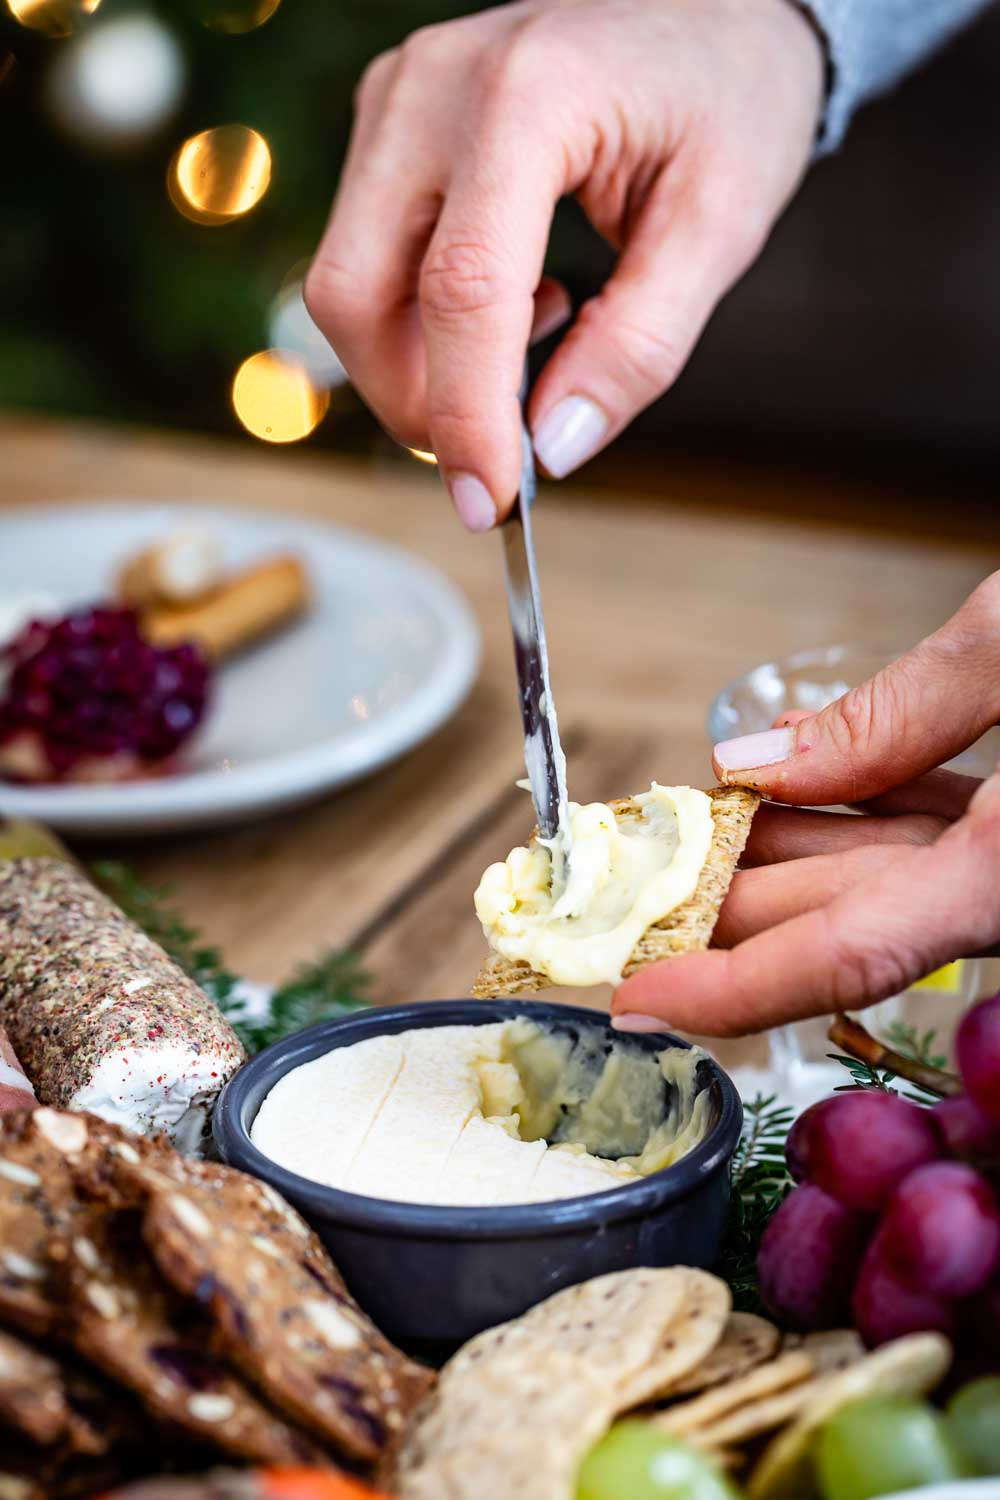 A woman is spreading goat cheese dip on a cracker